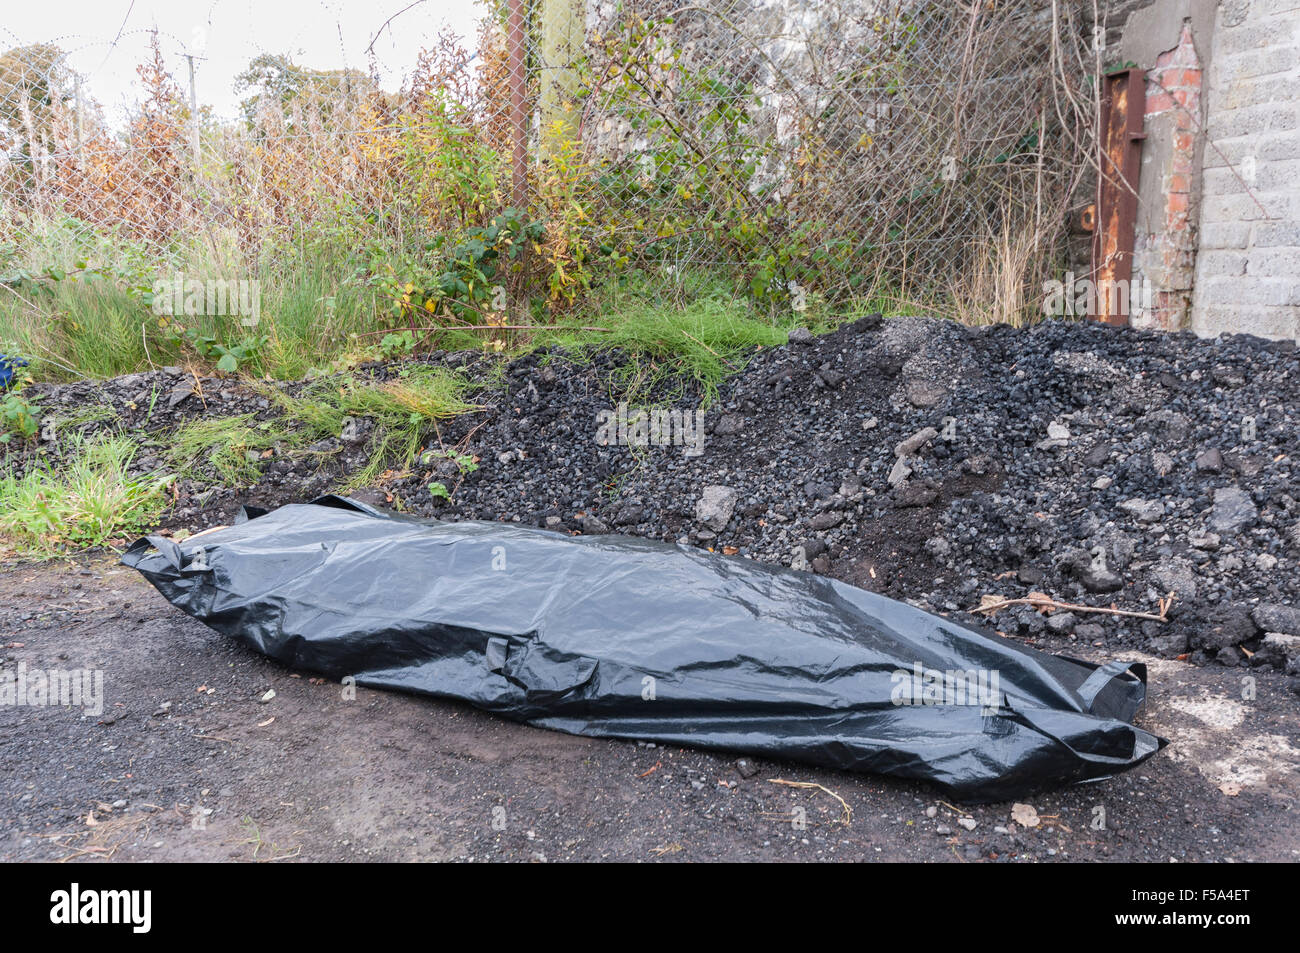 A body inside a body bag at an isolated location. - Stock Image